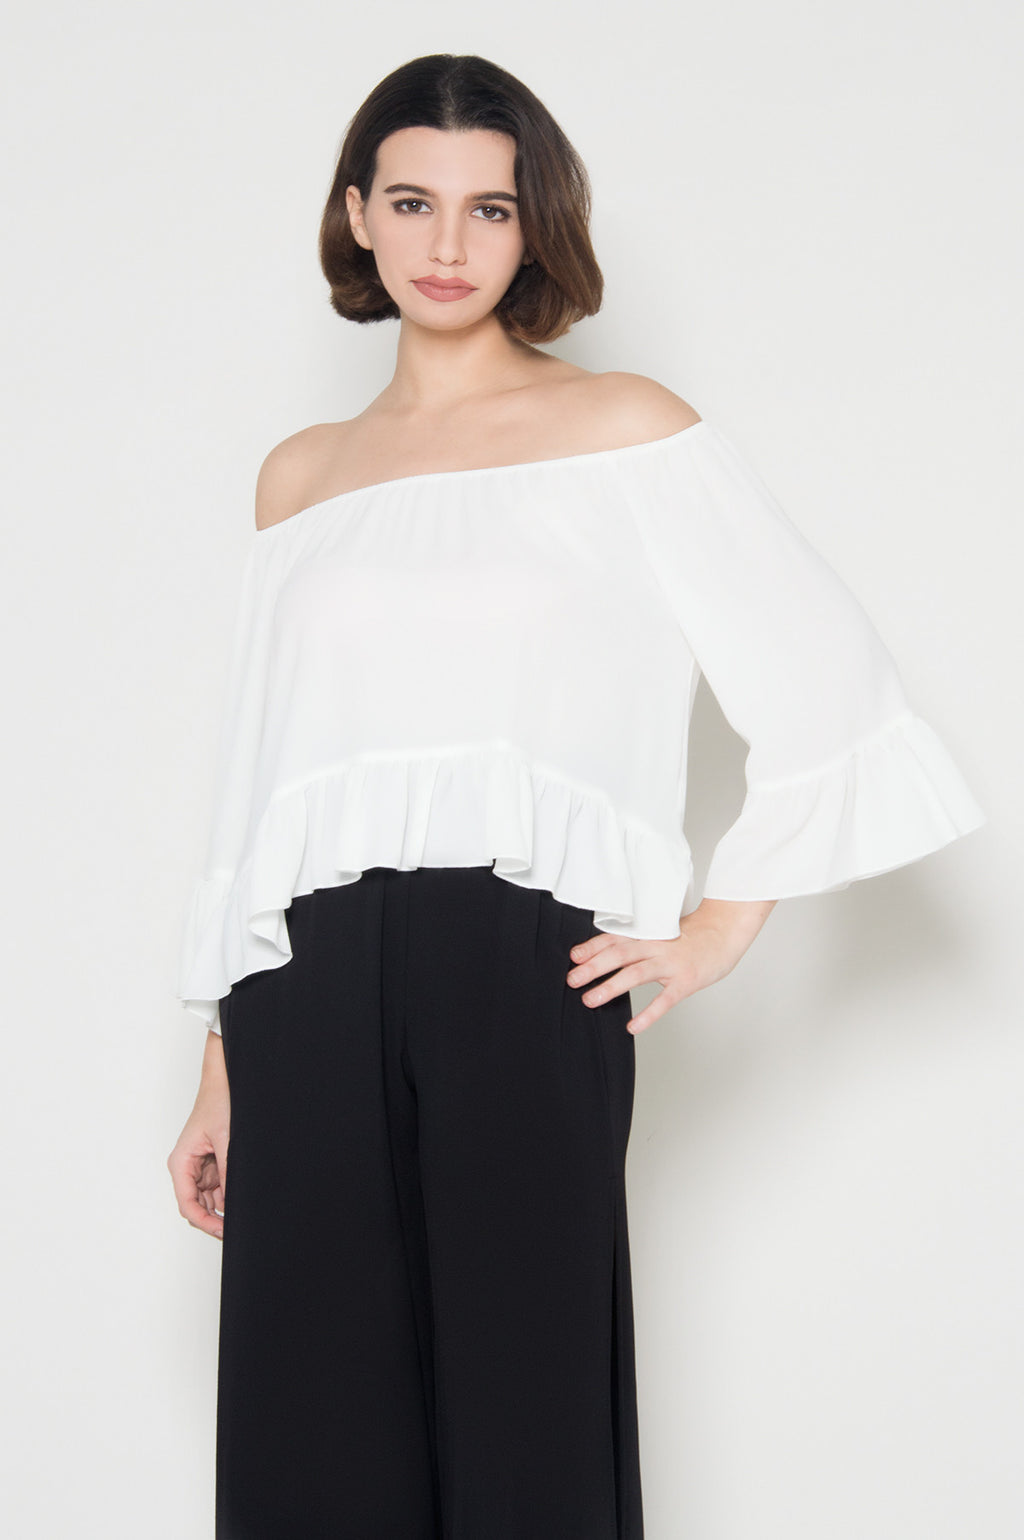 Off the Shoulder White Top Noble simplicity off shoulder blouse